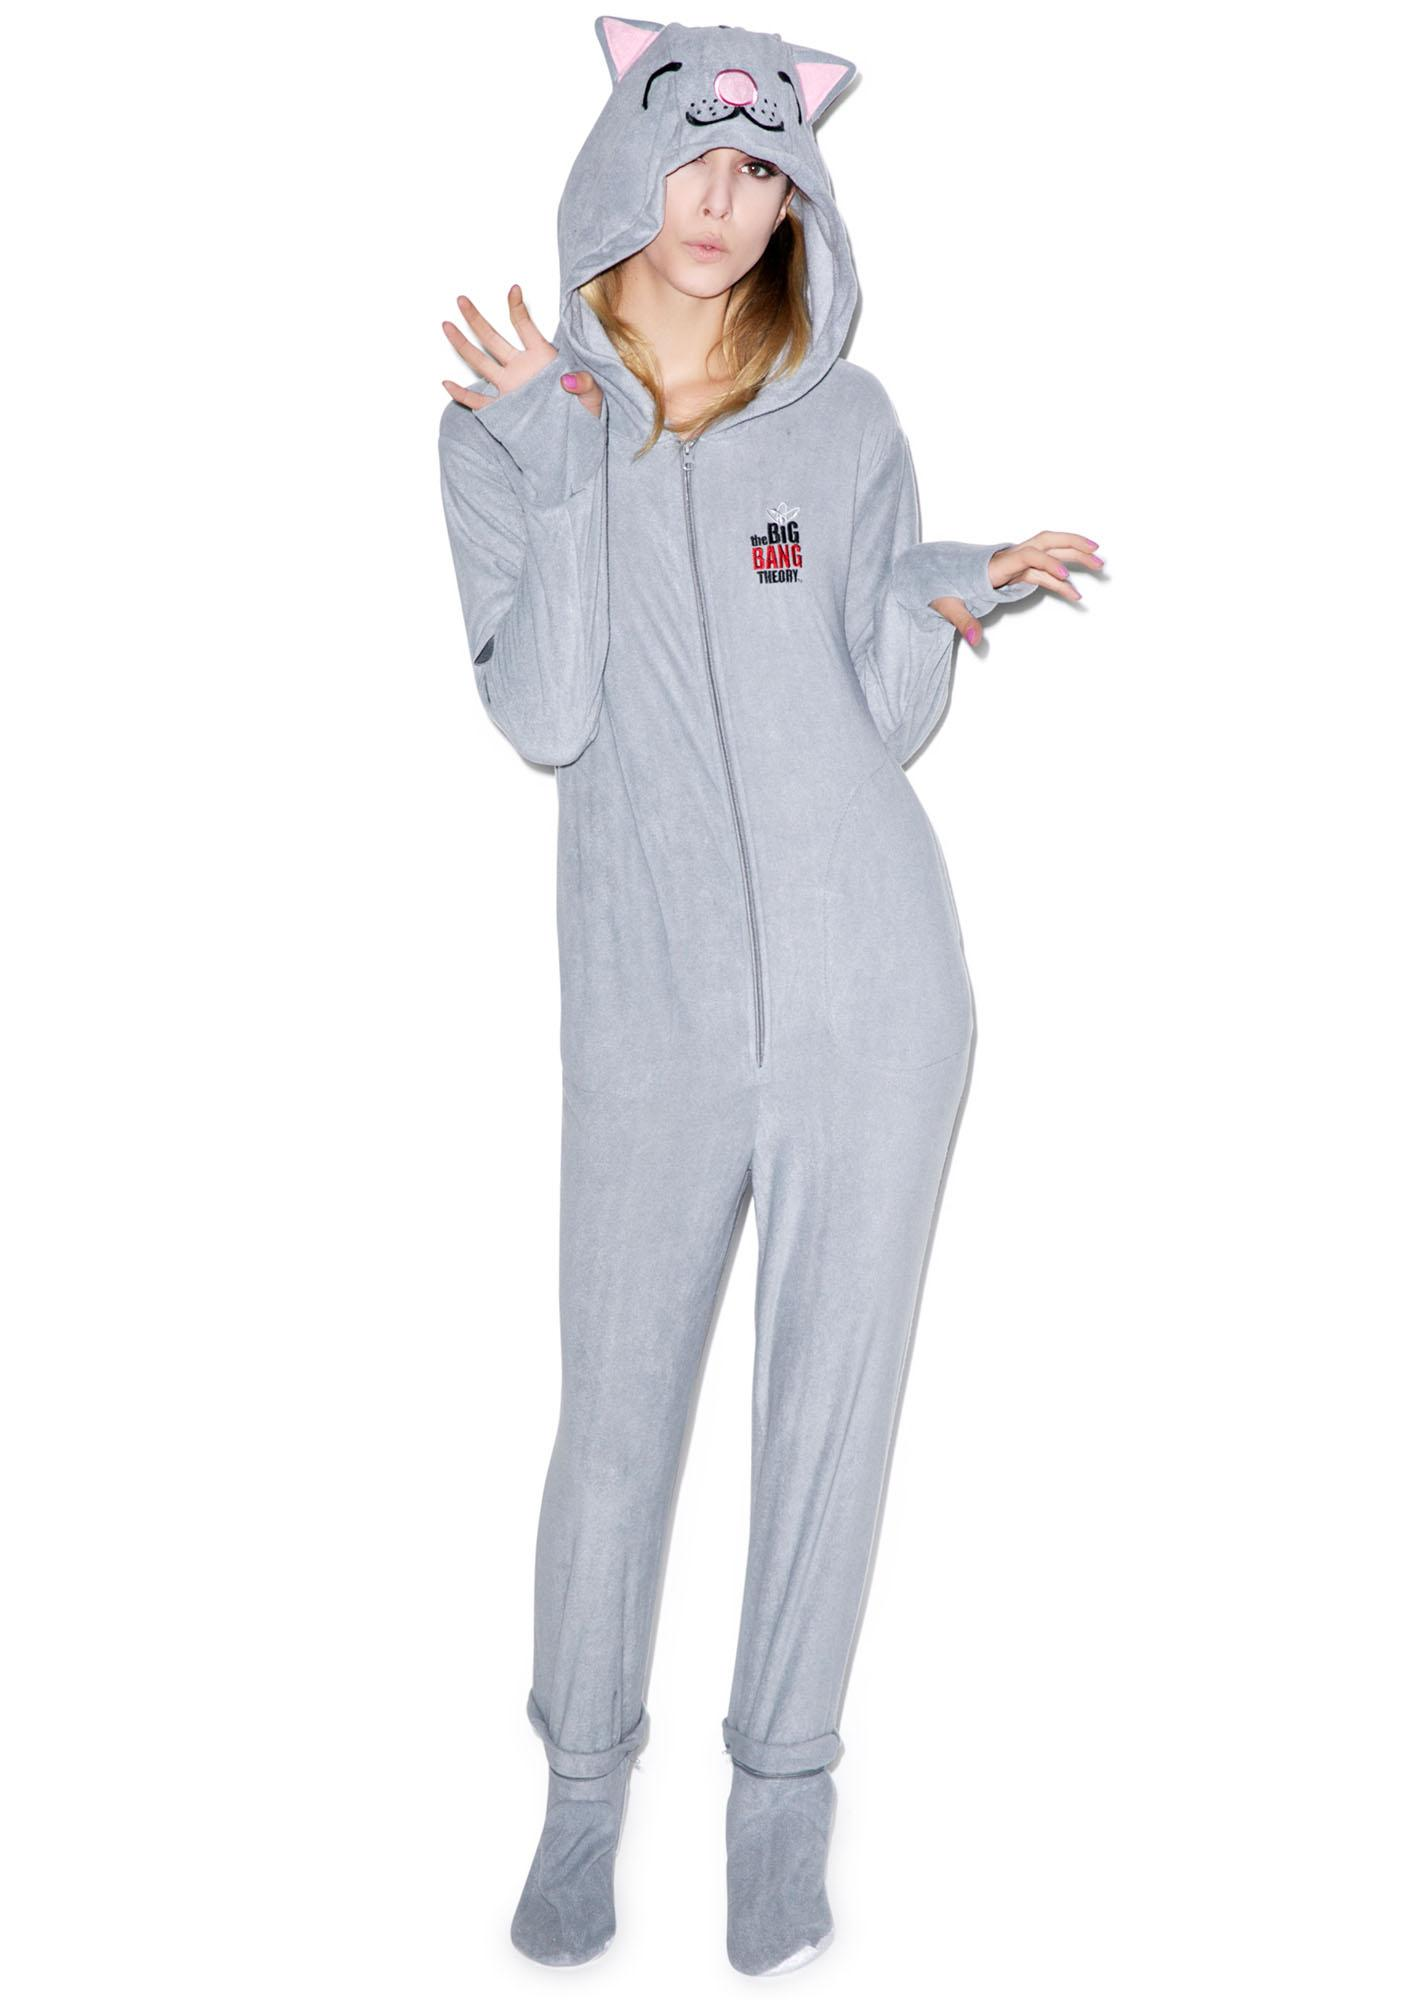 Undergirl The Big Bang Theory Kat Kigurumi